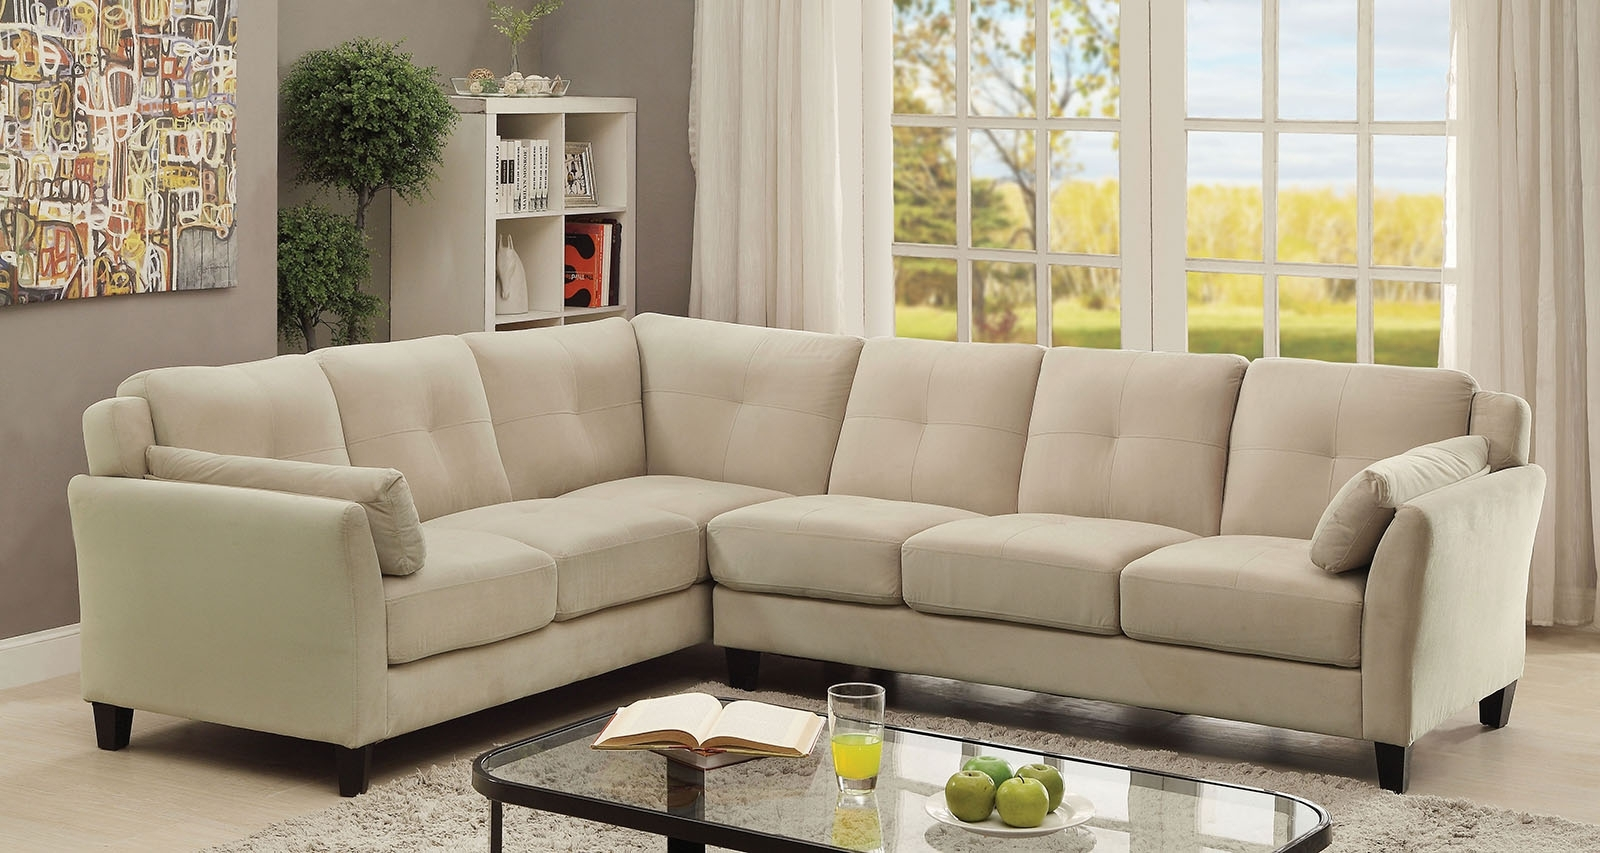 Sectional Sofa Sale Clearance Tags : 100 Incredible Sectional Sofa Intended For Michigan Sectional Sofas (View 8 of 10)